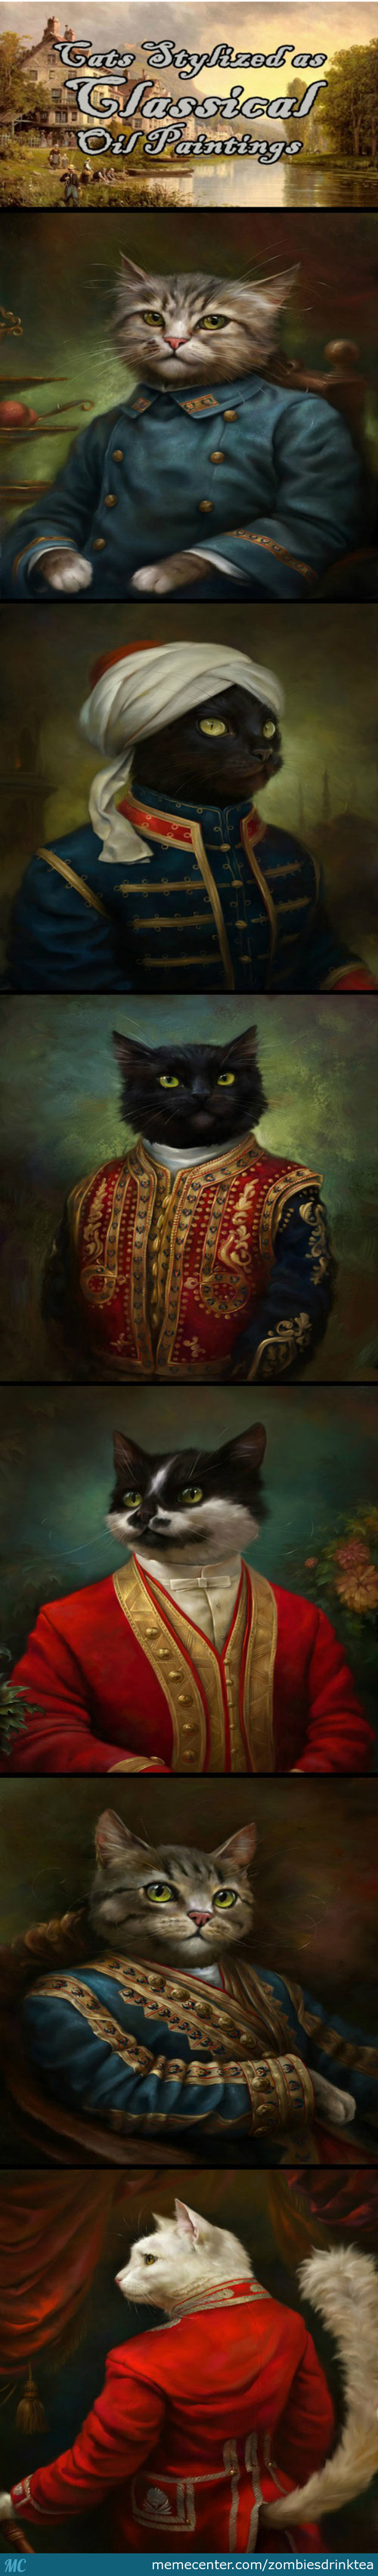 Cats Stylized as Classical Oil Paintings